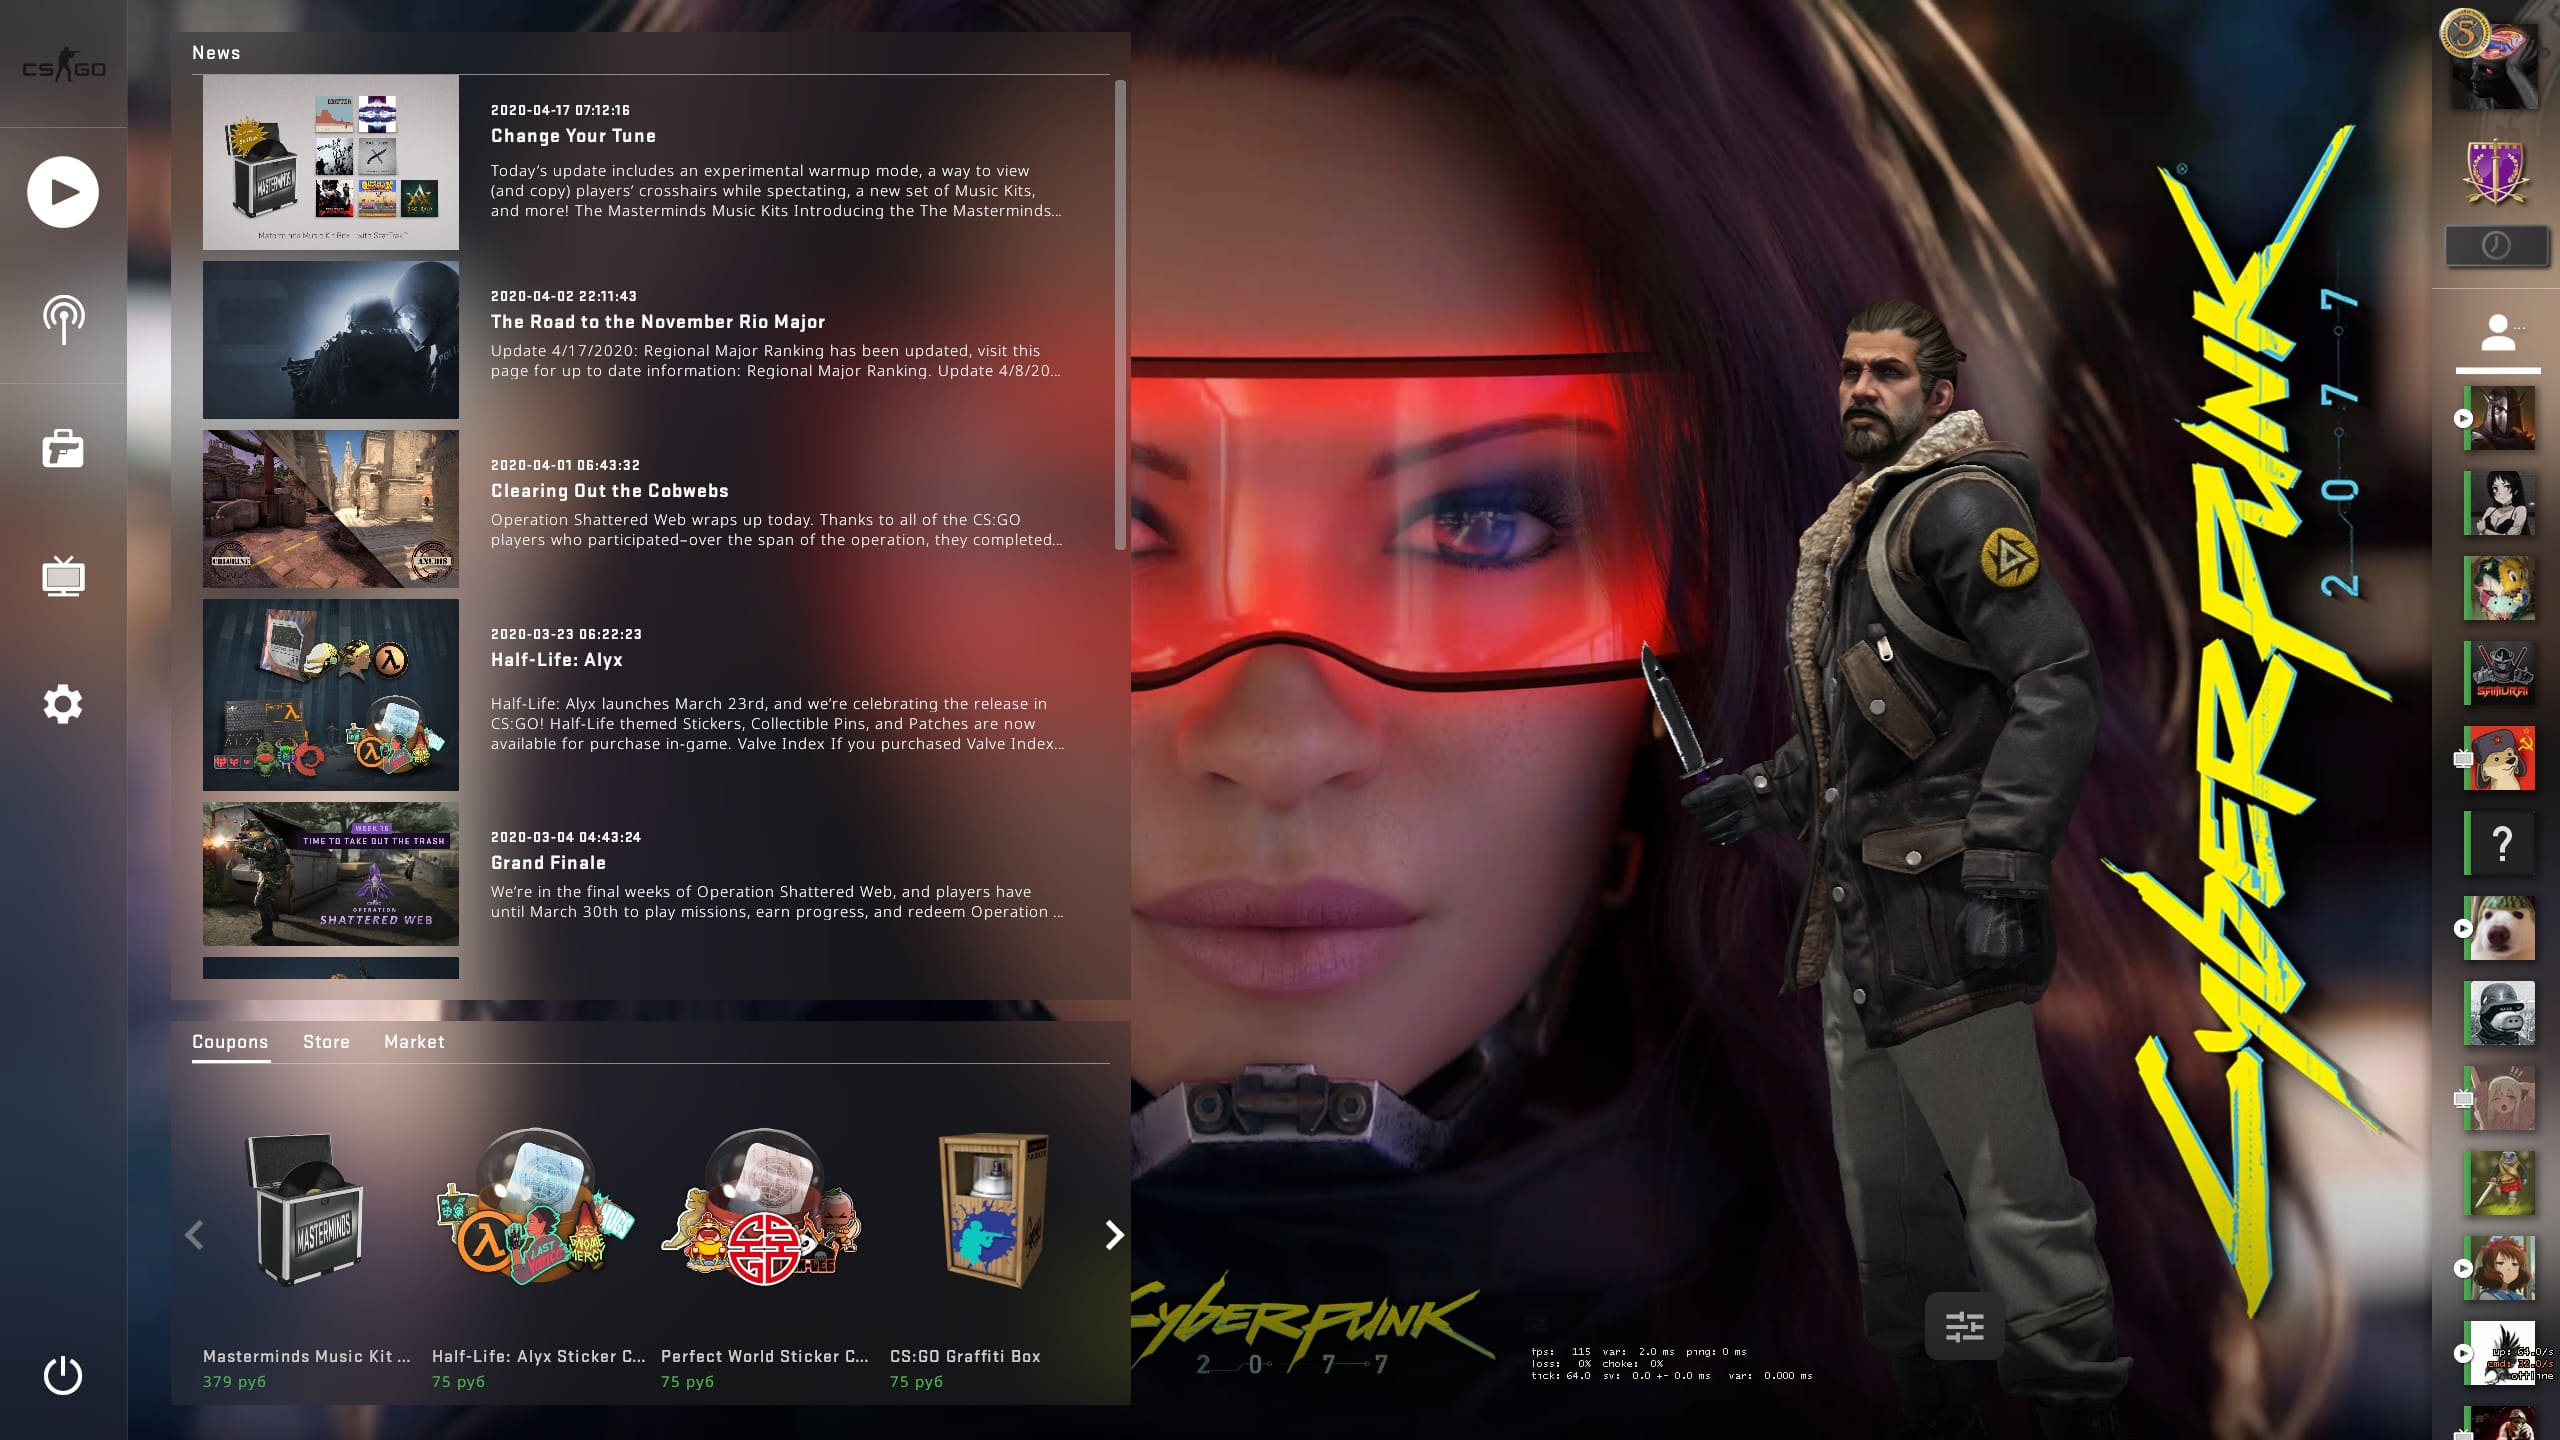 cyberpunk 2077 panorama UI woman